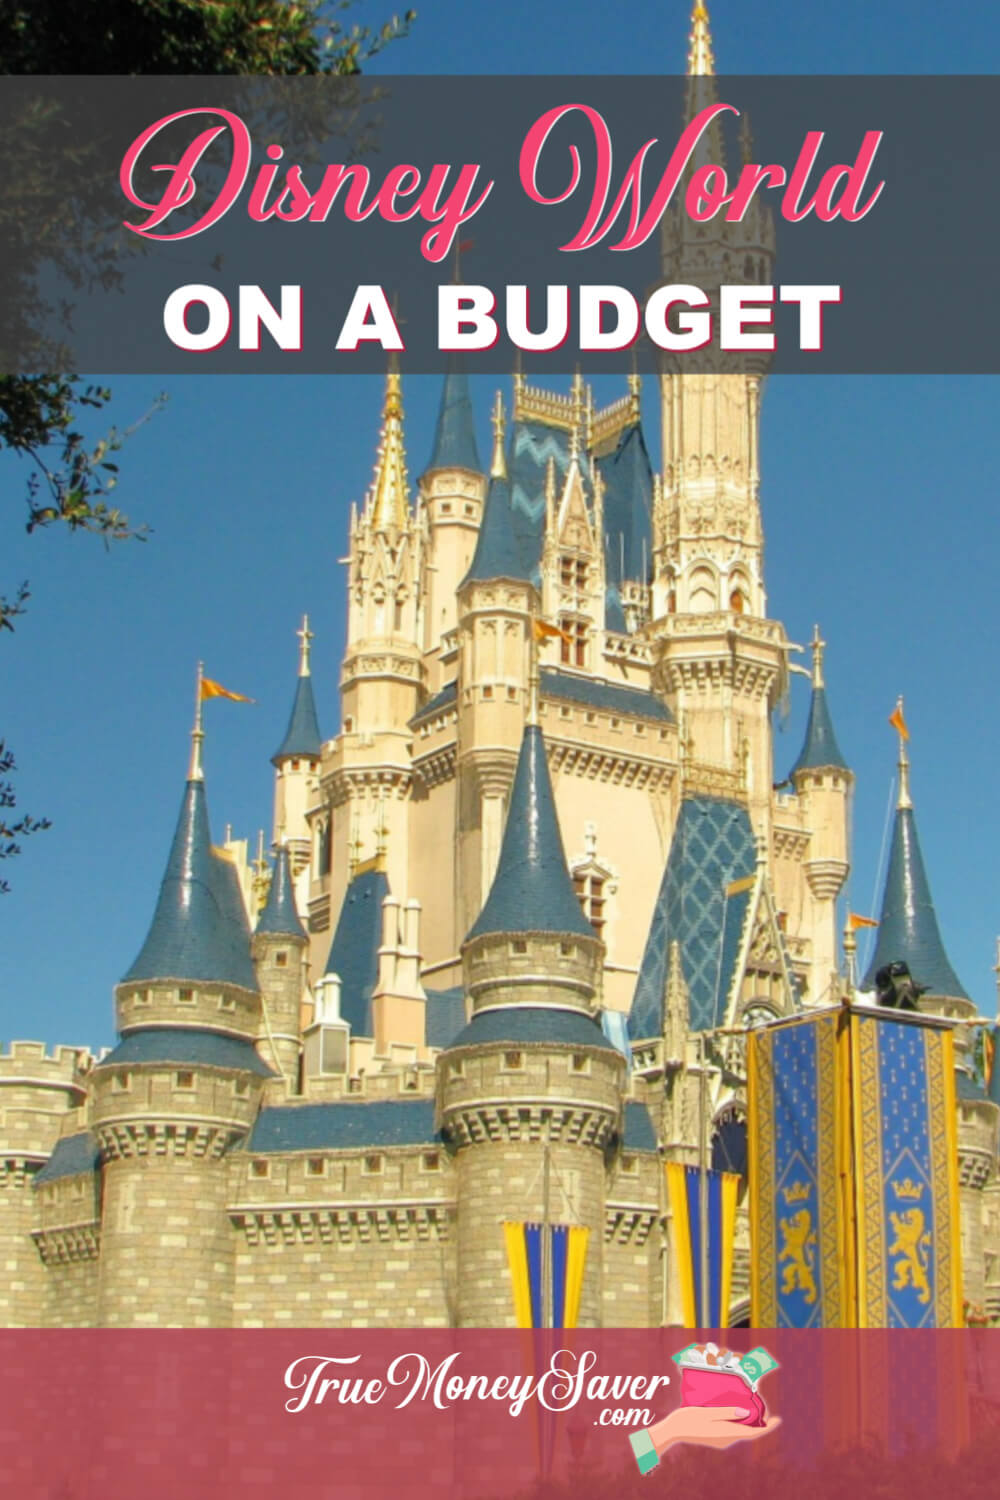 A Disney World vacation doesn't have to cost you your entire life savings. Learn how to keep all the magic while not breaking the bank! #truemoneysaver #savingmoney #disneyvacation #familyfun #florida #floridavacation #vacations #familyvacations